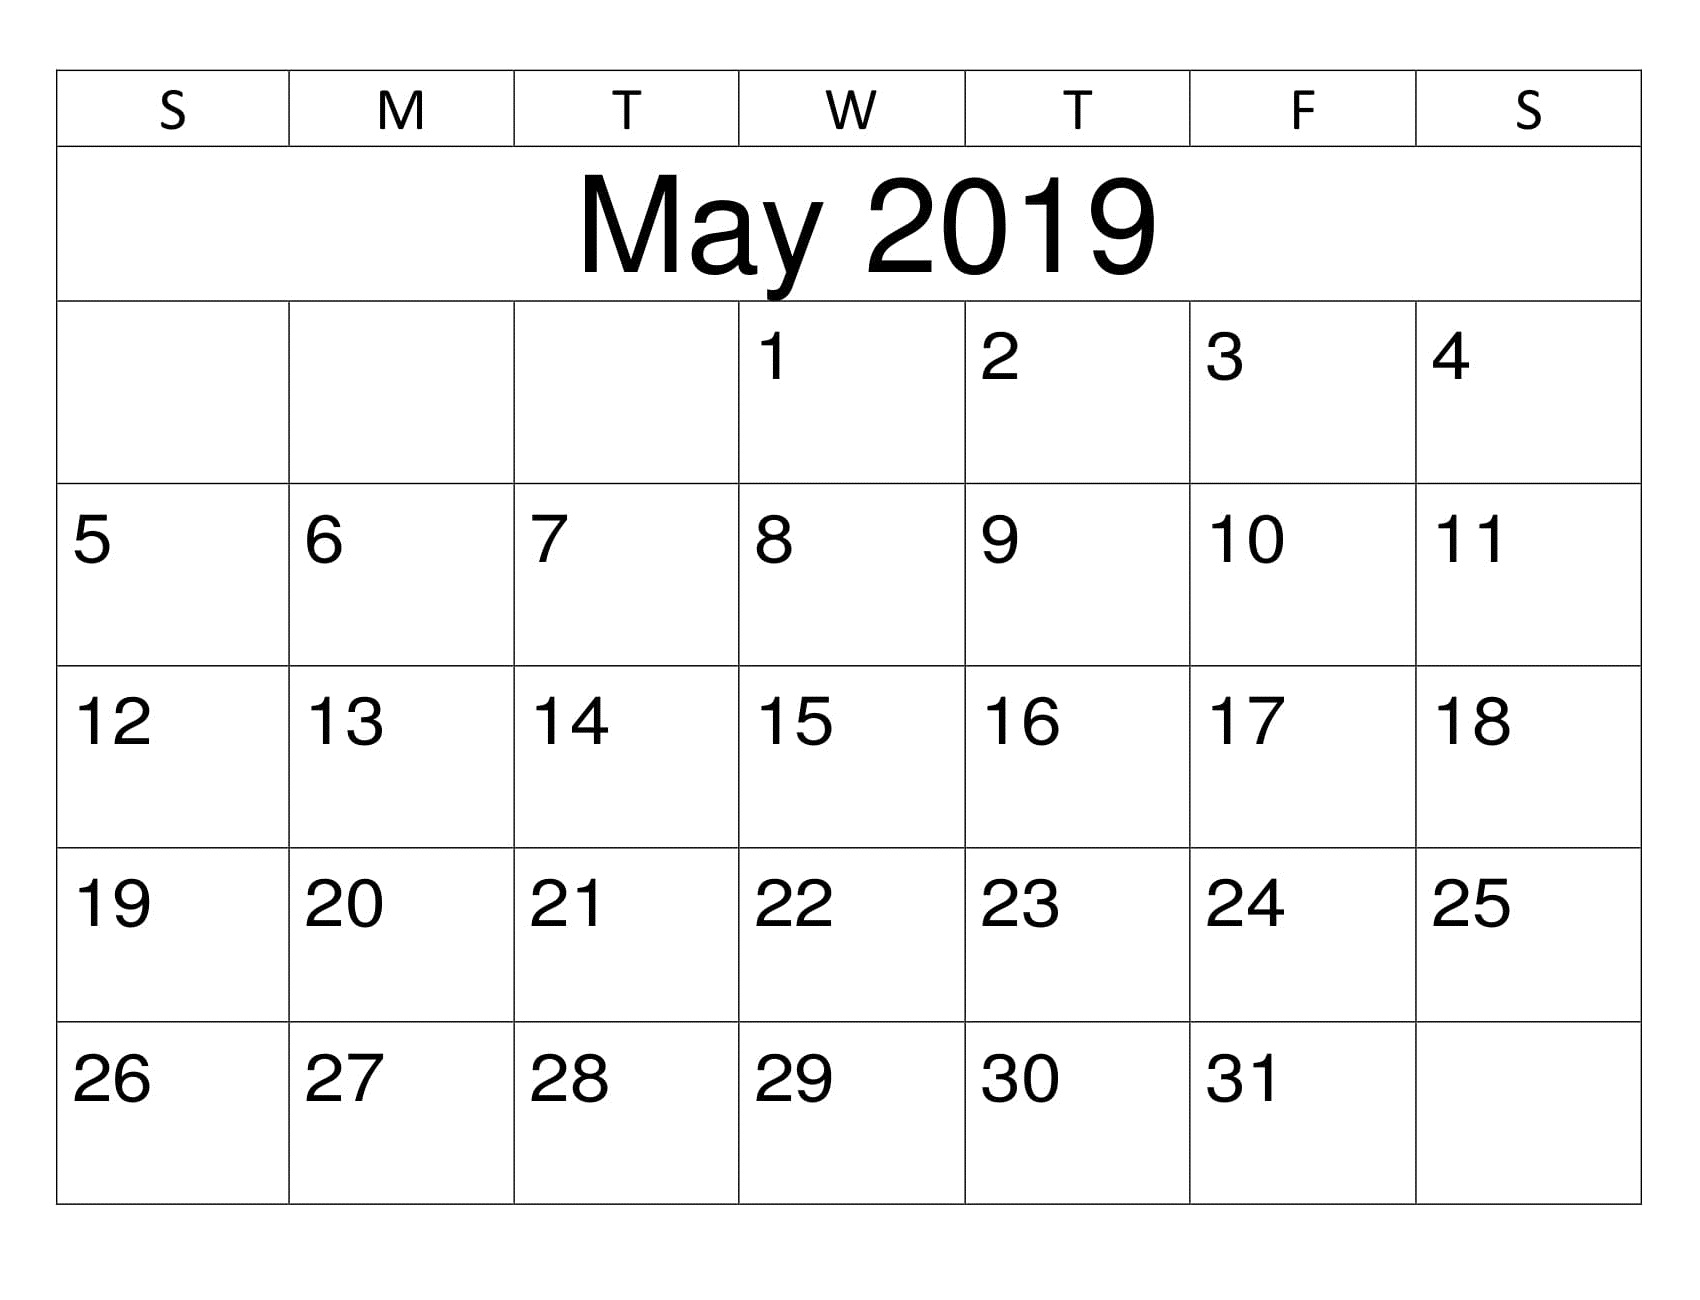 May 2019 Excel Template Calendar